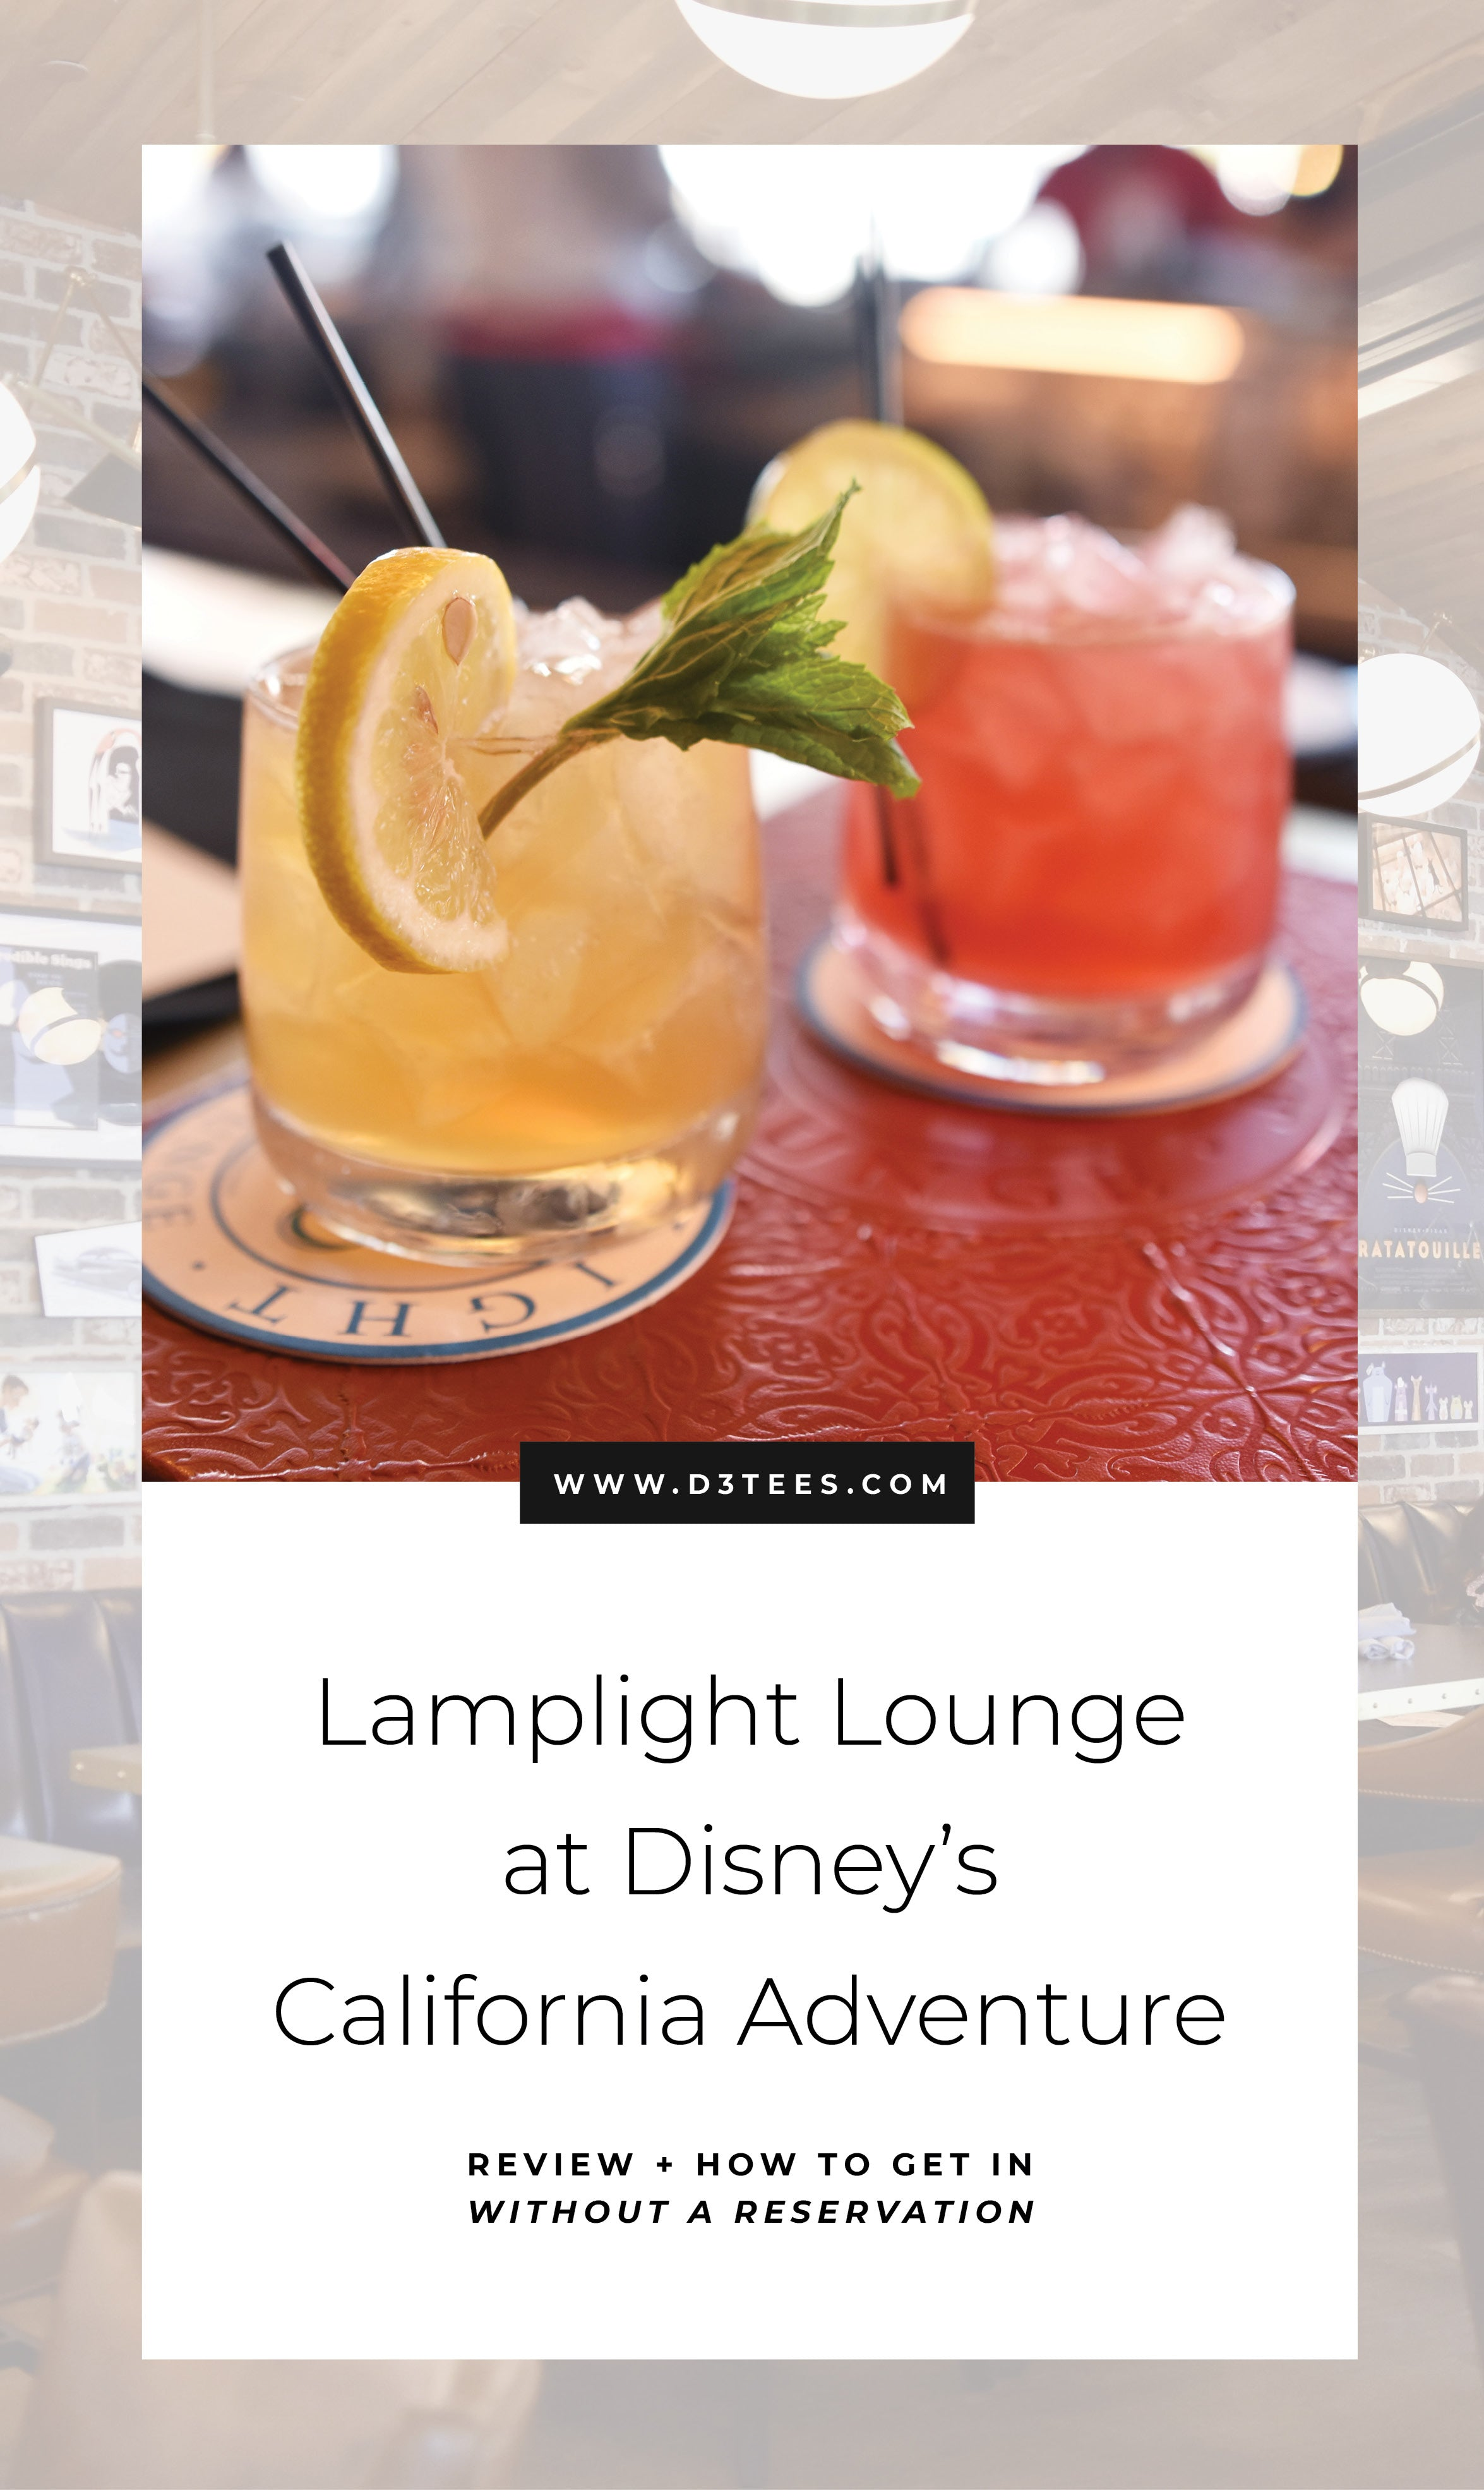 Lamplight Lounge Review from D3tees.com | Disneyland Planning | Disneyland Vacation | Disney Tips